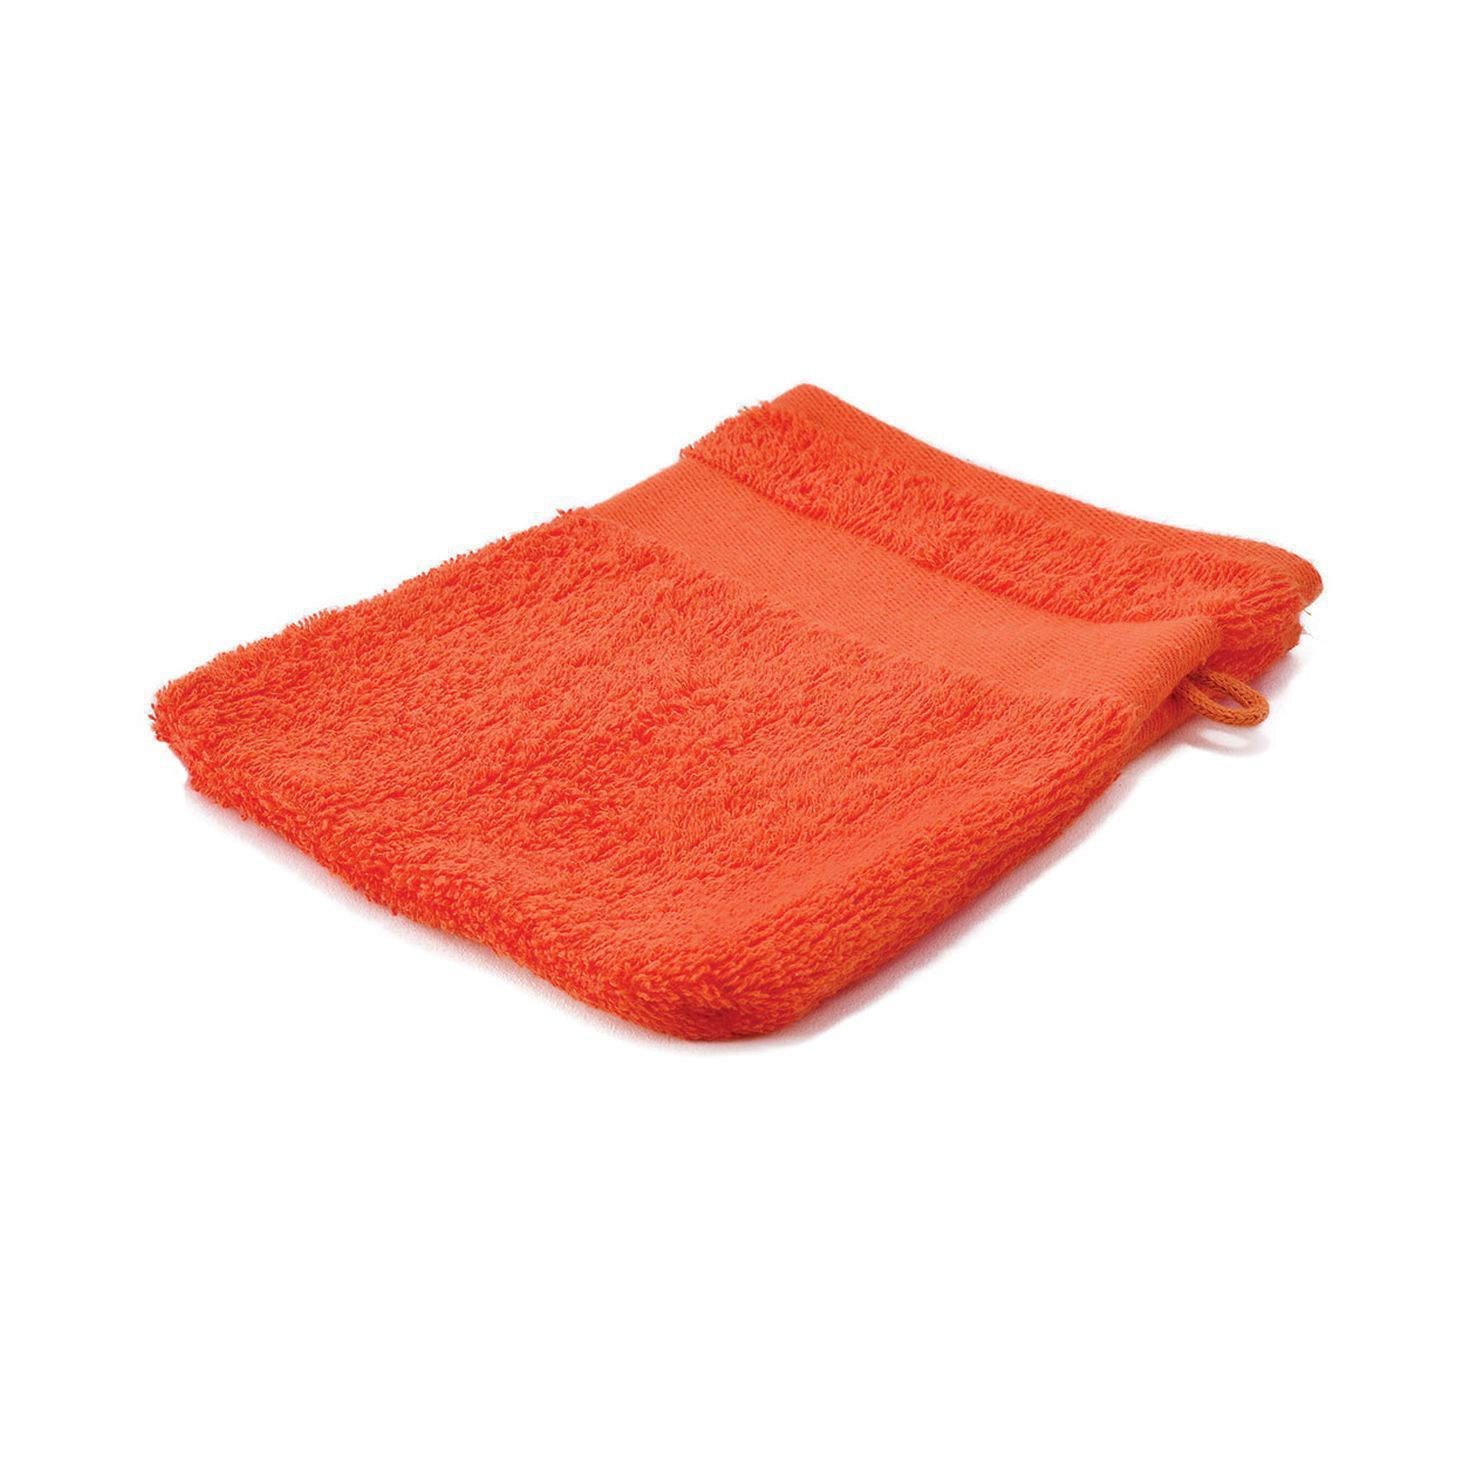 Oranje Washandjes borduren | 450 grams